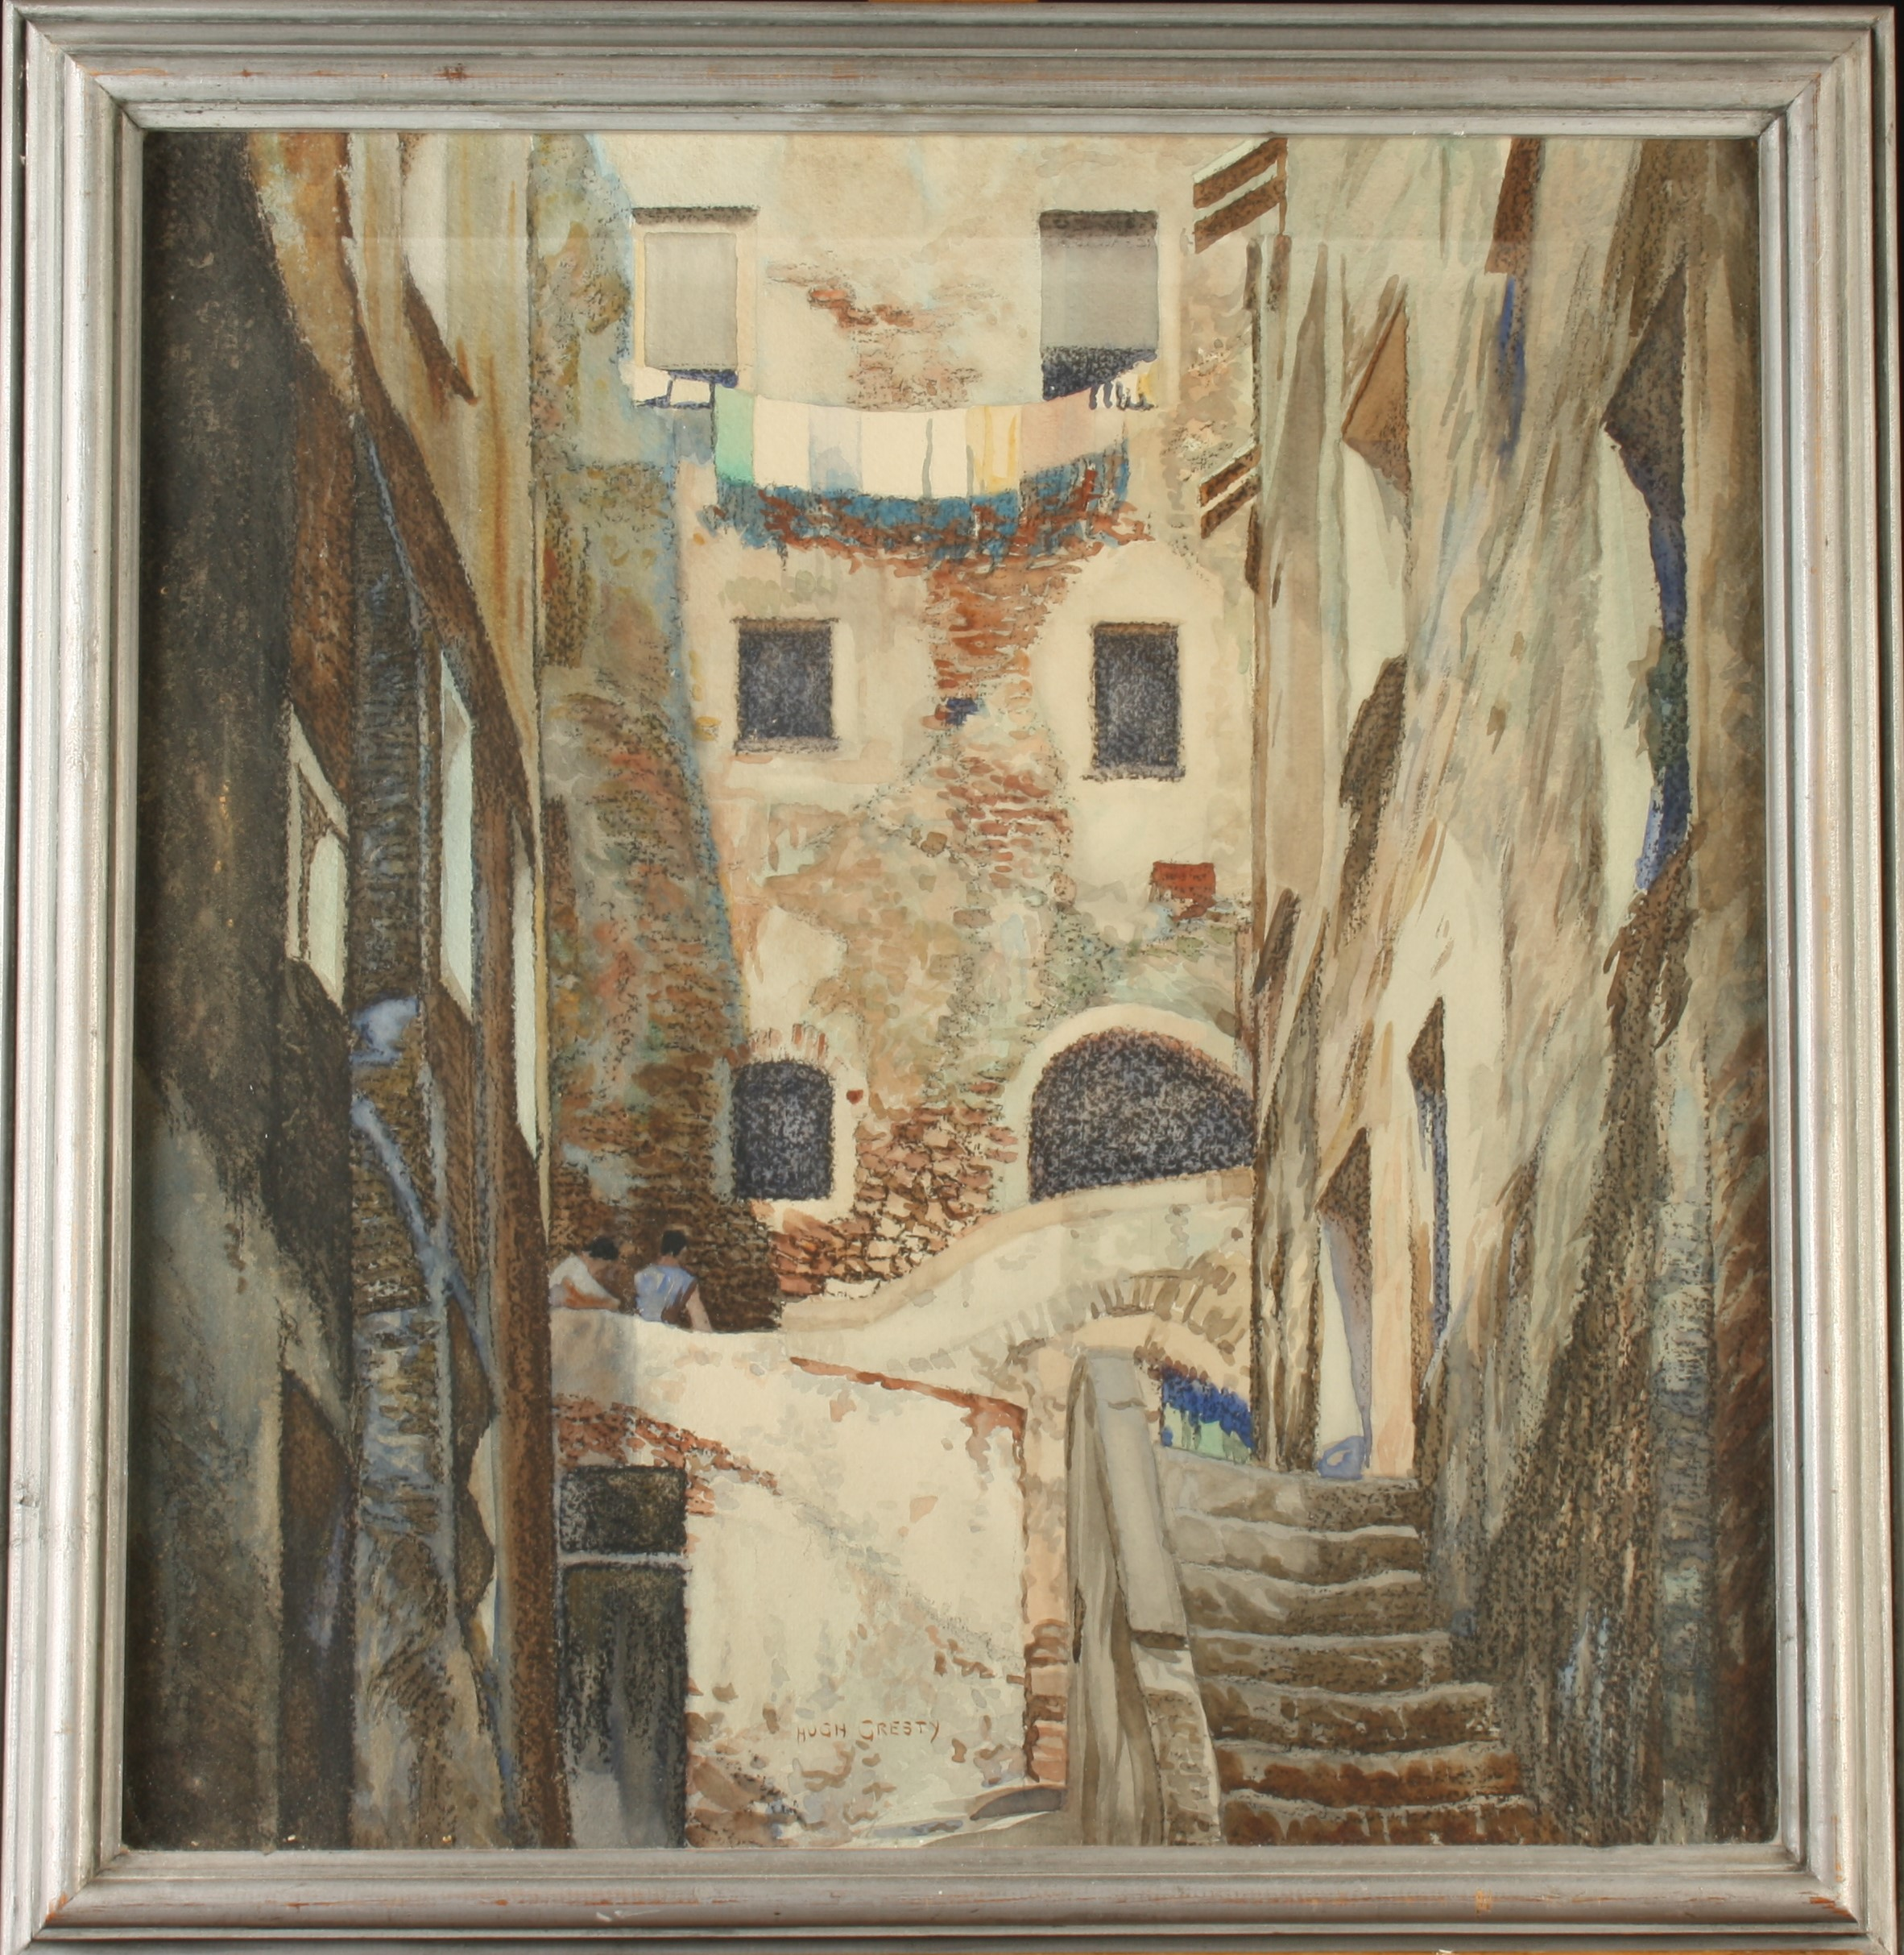 Lot 5 - Hugh GRESTY San Remo Watercolour Signed Together with one other Italian architectural